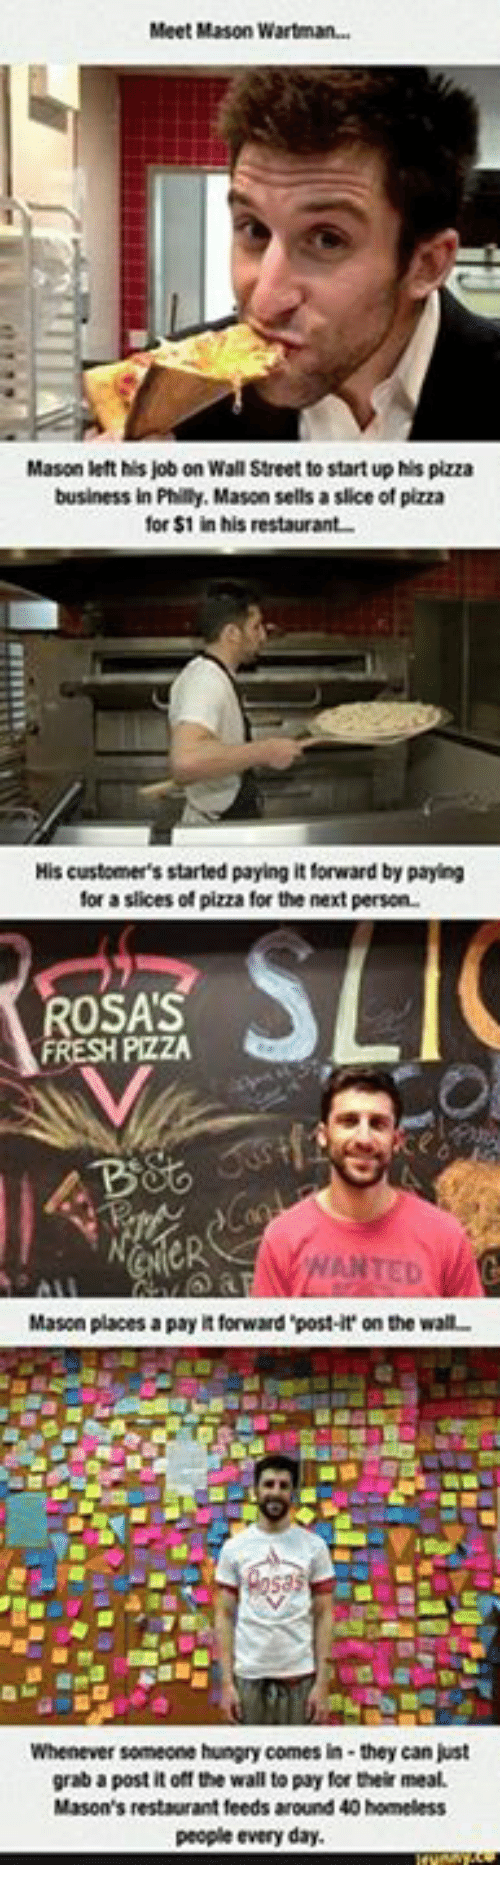 Homeless, Hungry, and Pizza: Meet Mason Wartman...  Mason left his job on Wall Street to start up his pizza  business in Philly, Mason sells a slice of pizza  for $1 in his restaurant  His customer's started paying it forward by paying  for a slices of pizza for the next person.  OSAS  PizZA  Mason places a payit forward post-it' on the wall-  Whenever someone hungry comes in- they can just  grab a postitoff the wall topay for their meal.  Mason's restaurant feeds around 40 homeless  people every day.